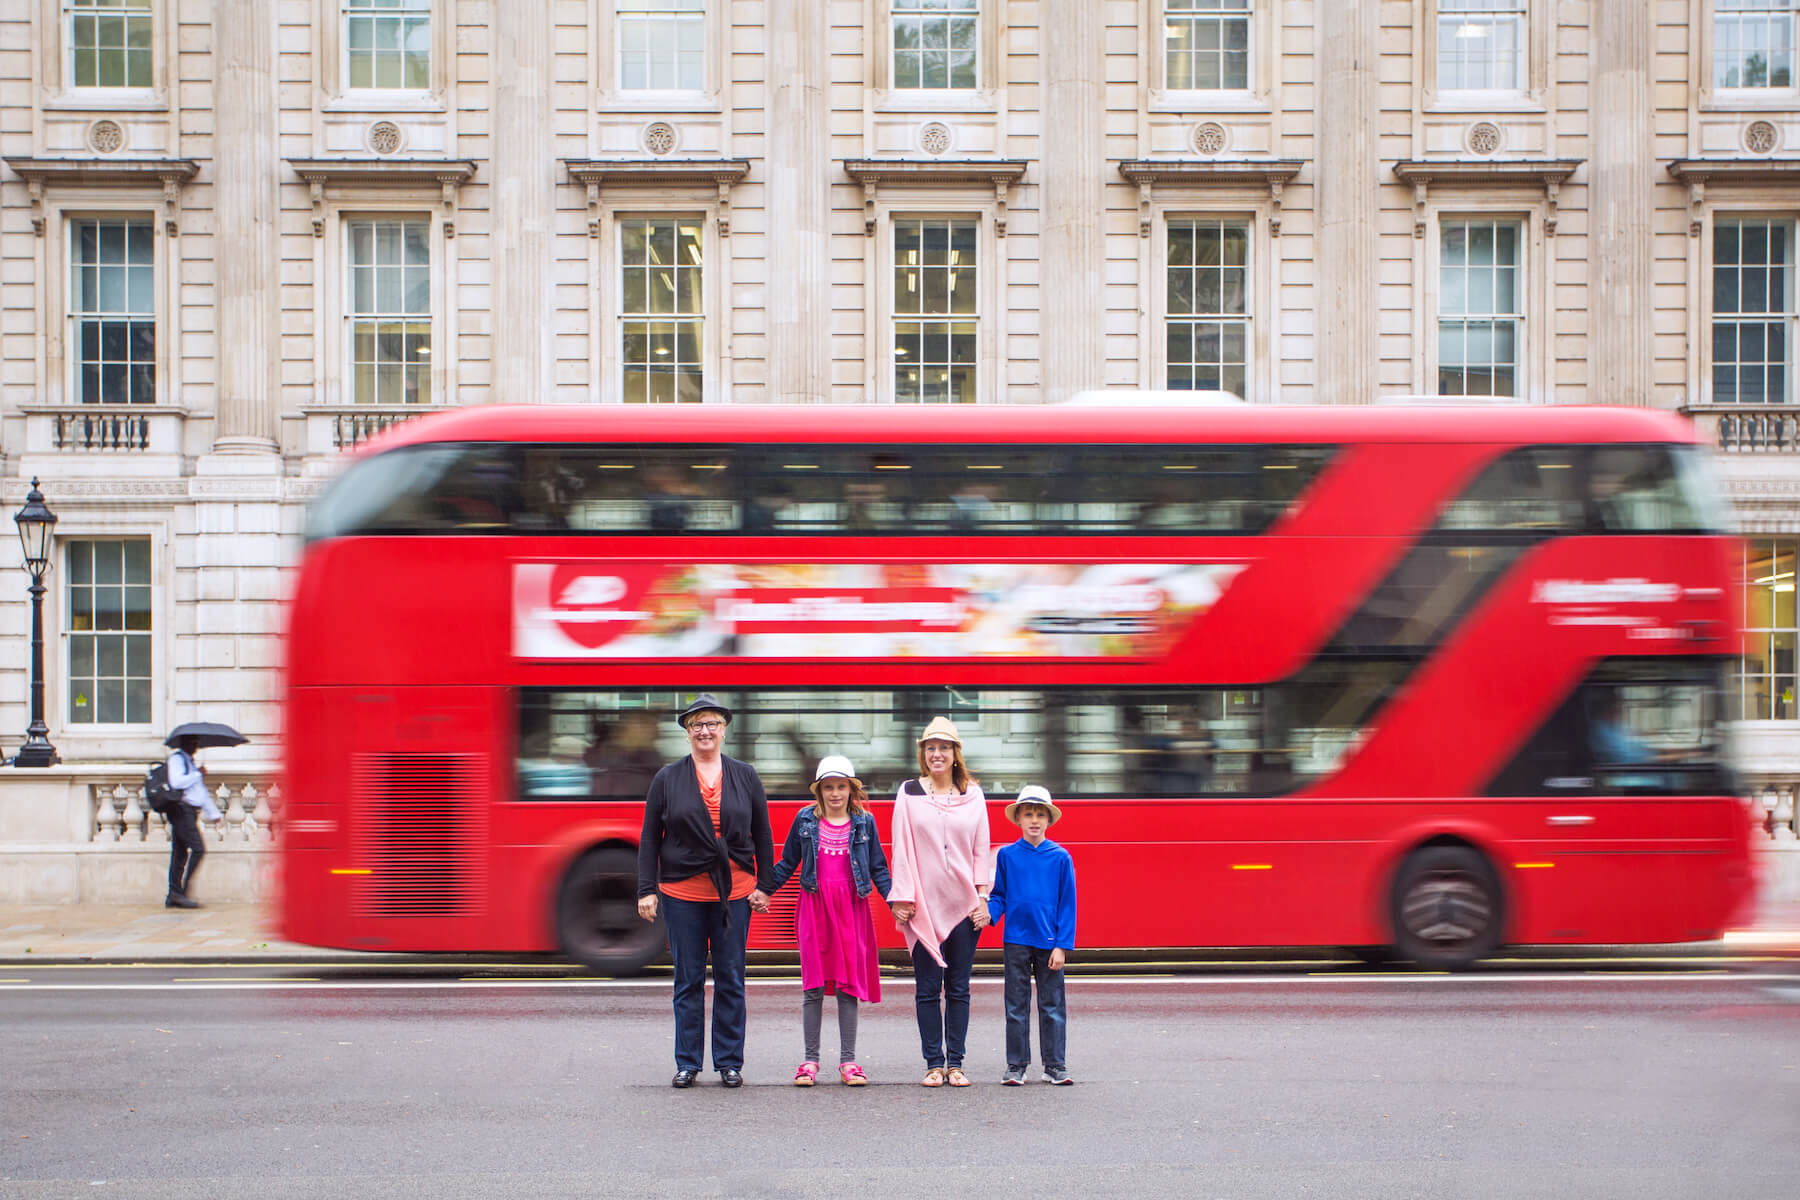 family in front of a double decker bus in London, England